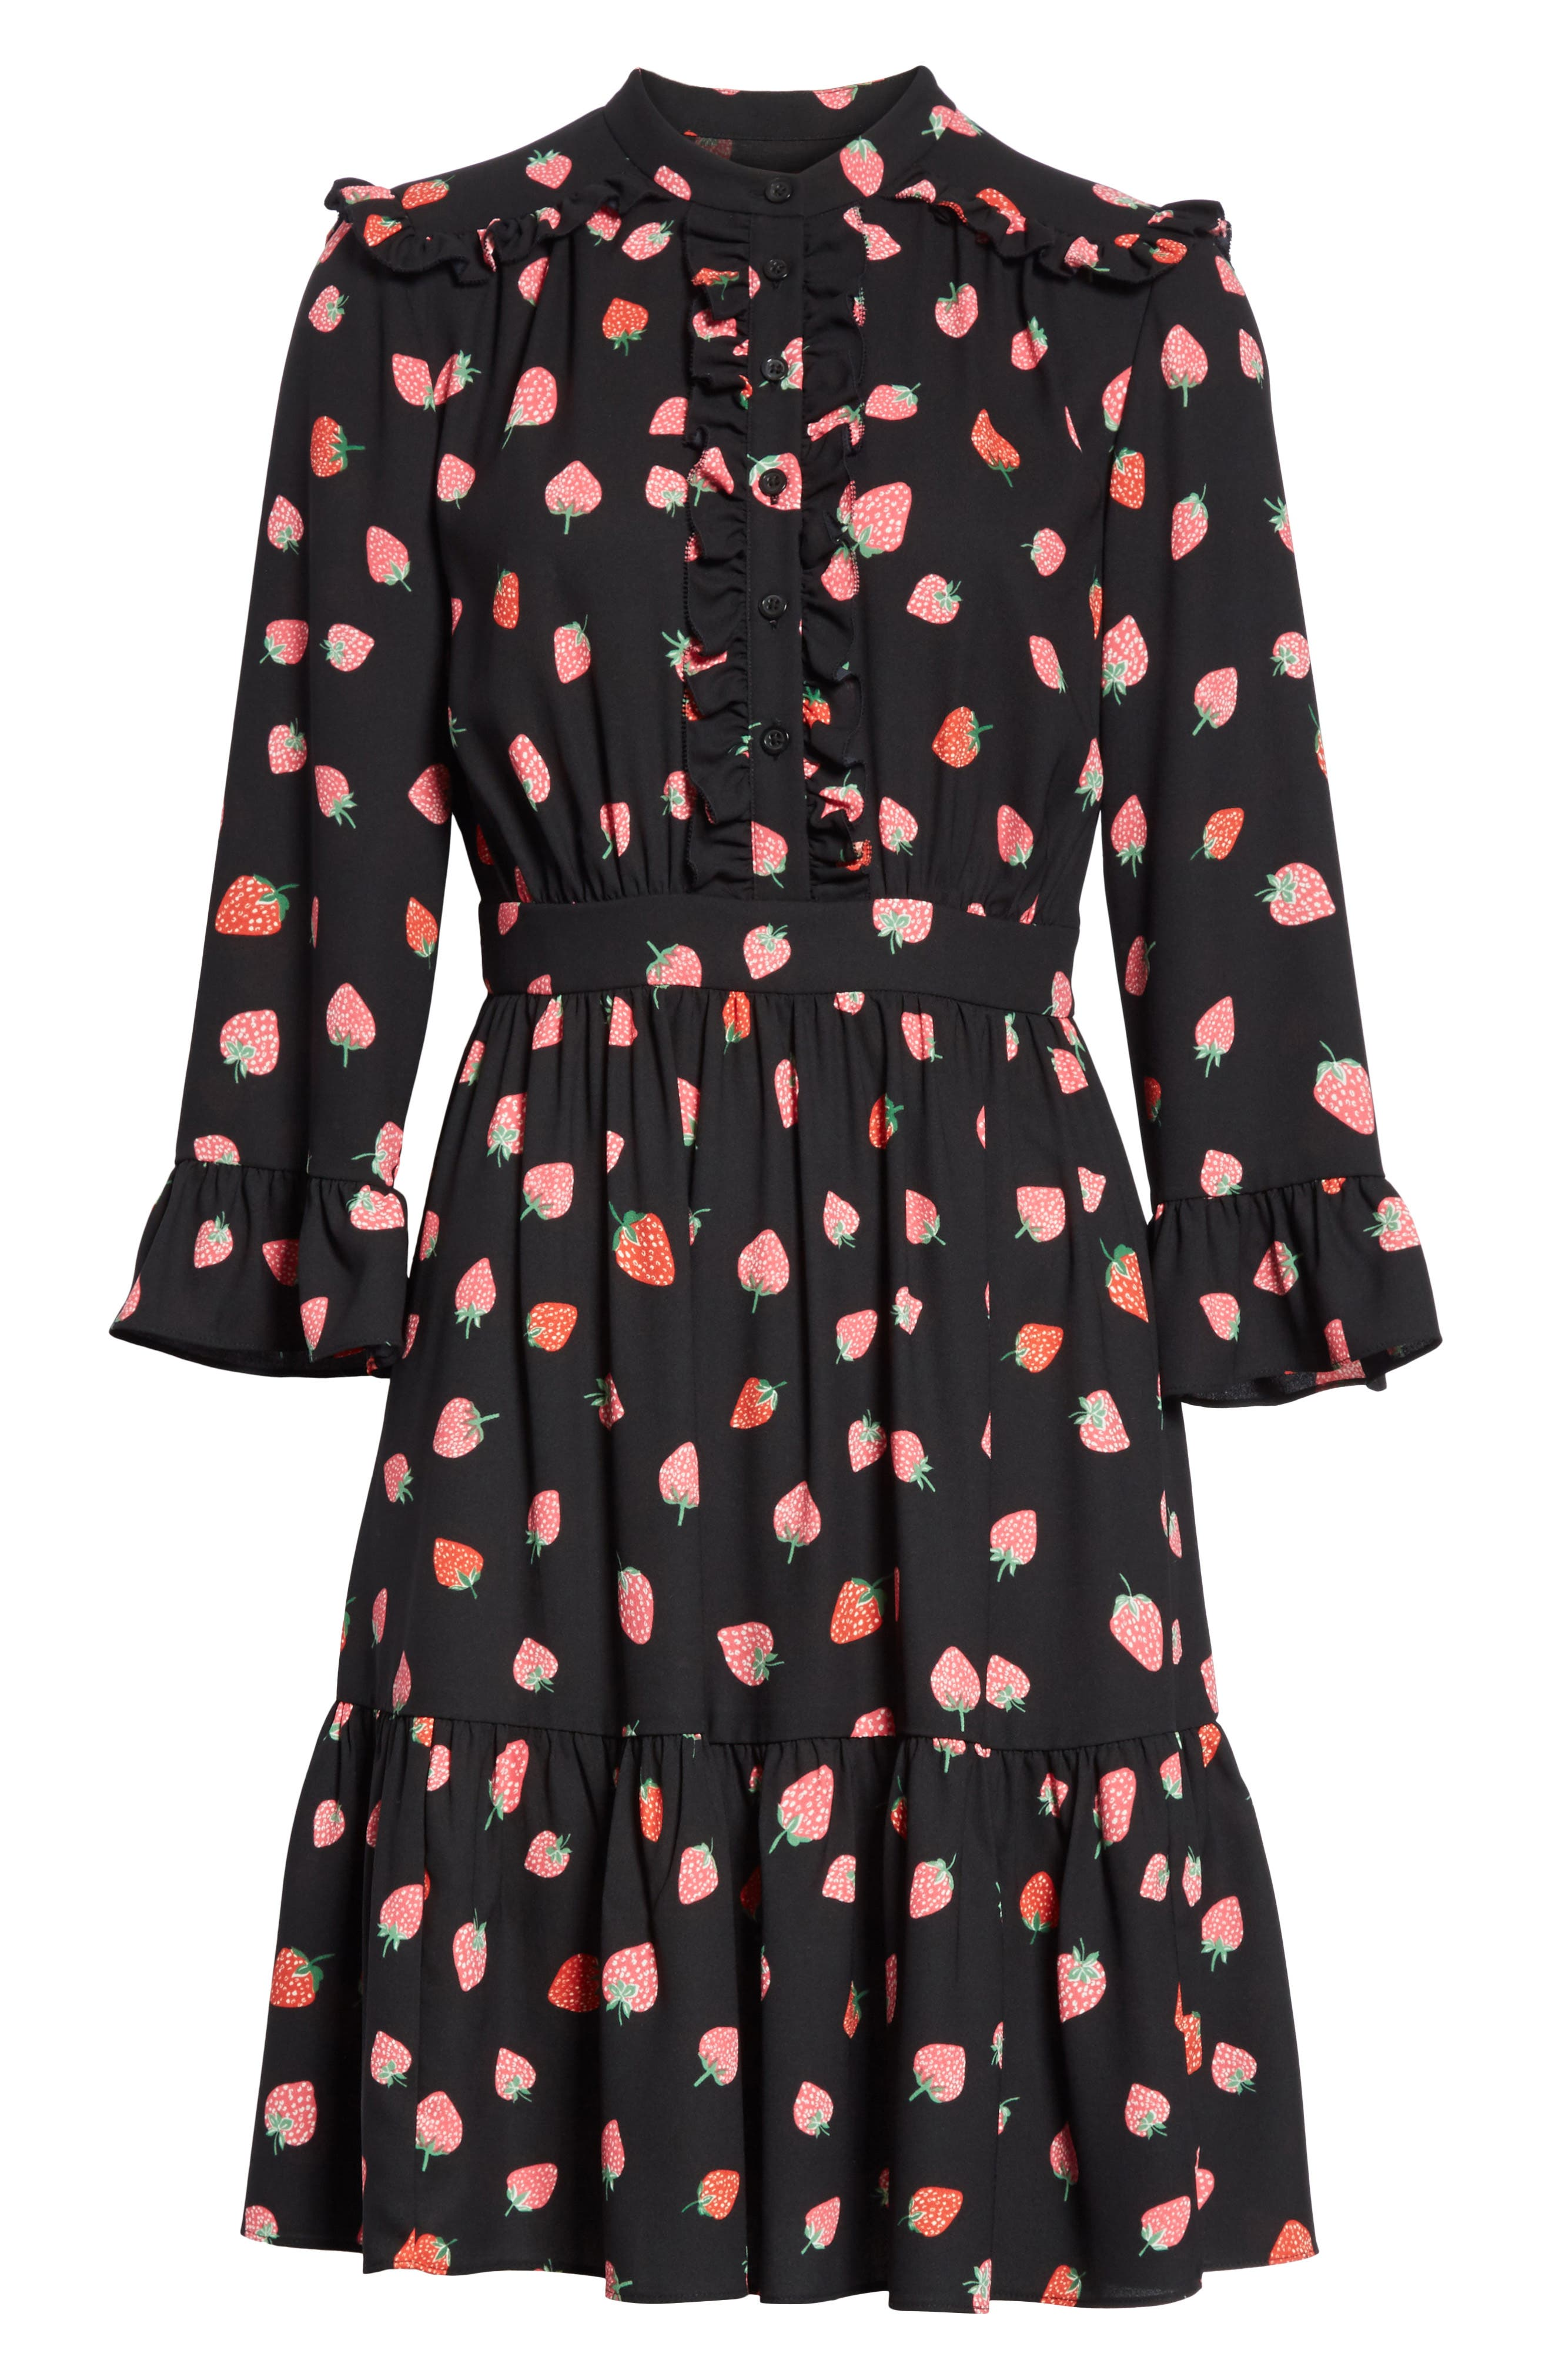 tossed berry shirtdress,                             Alternate thumbnail 6, color,                             001